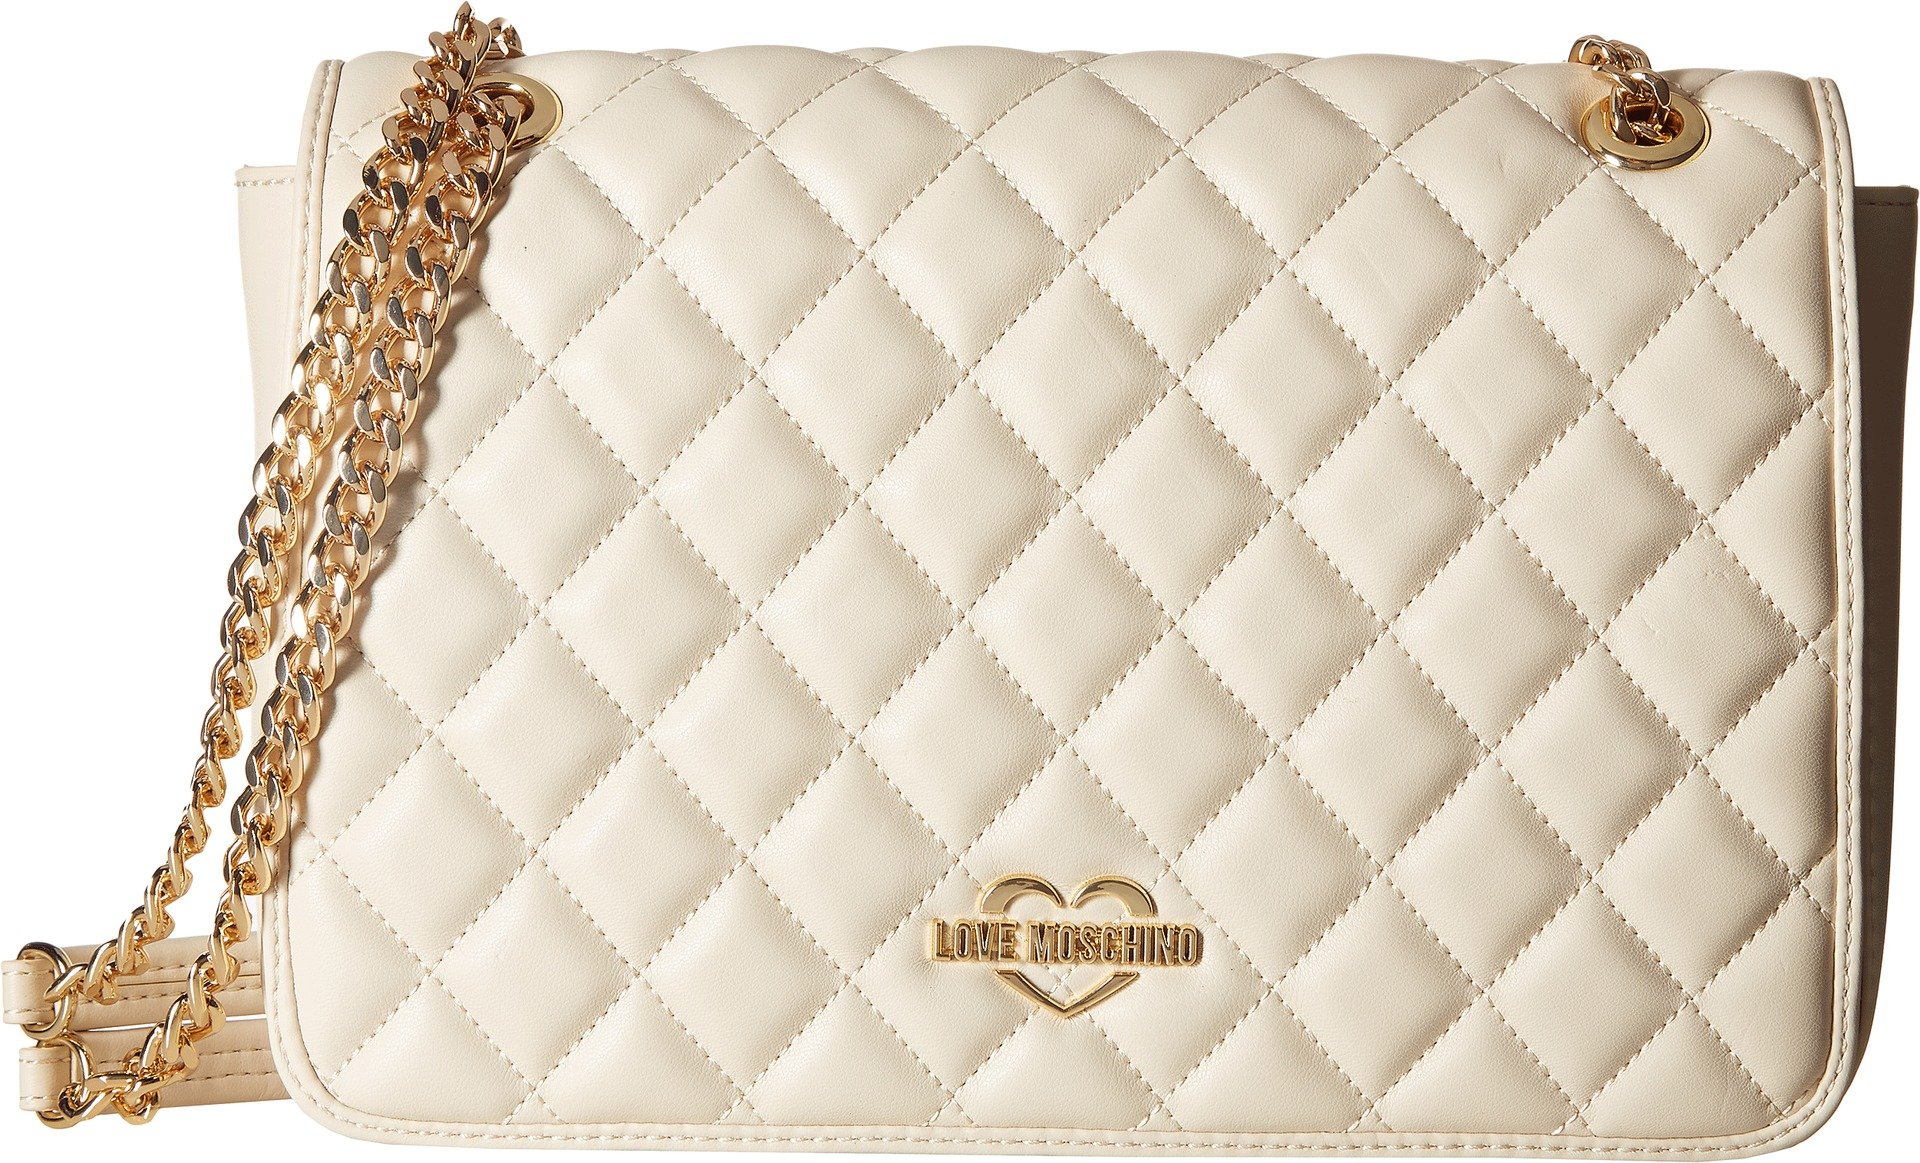 LOVE Moschino Women's Super Quilted Shoulder Bag Ivory One Size